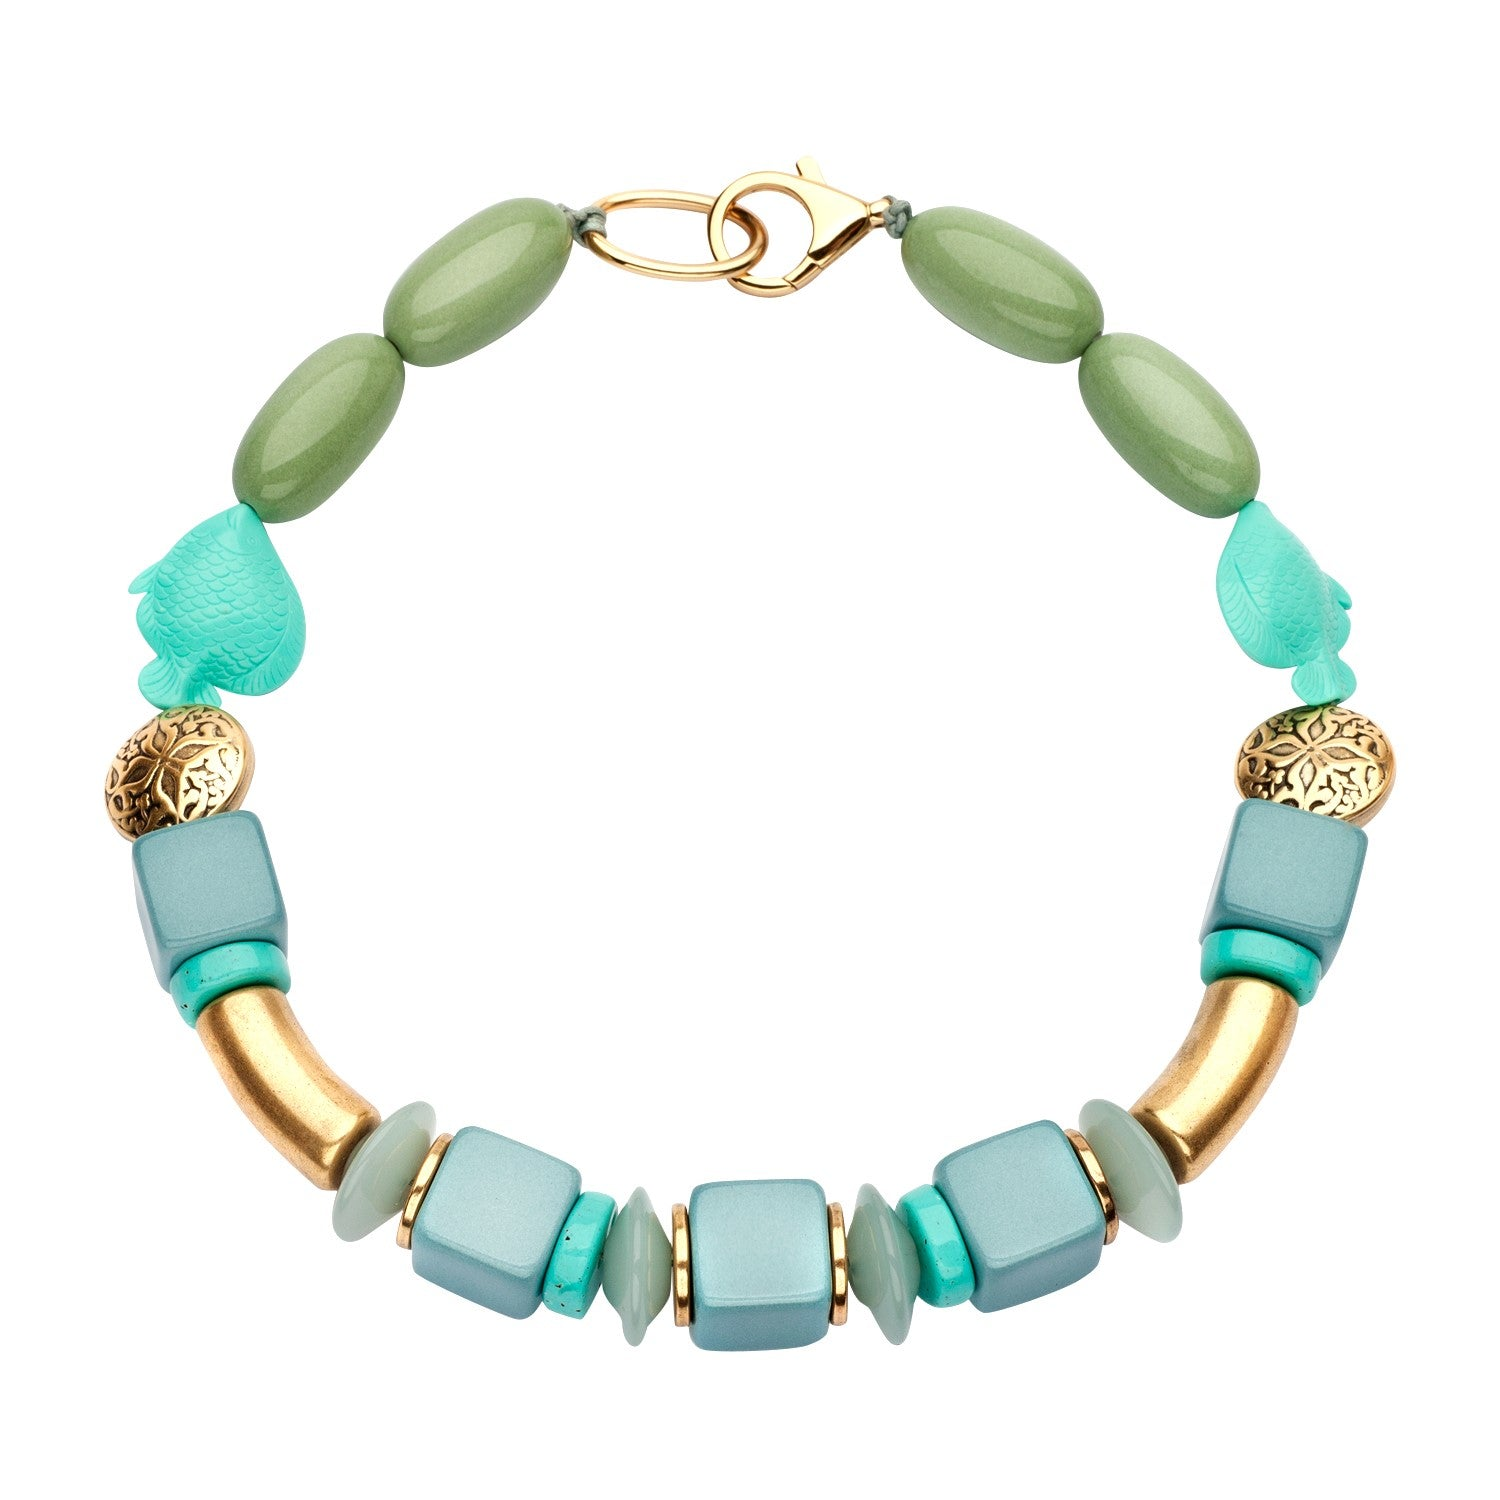 Beaded single necklace turquoise mint - Souvenirs de Pomme